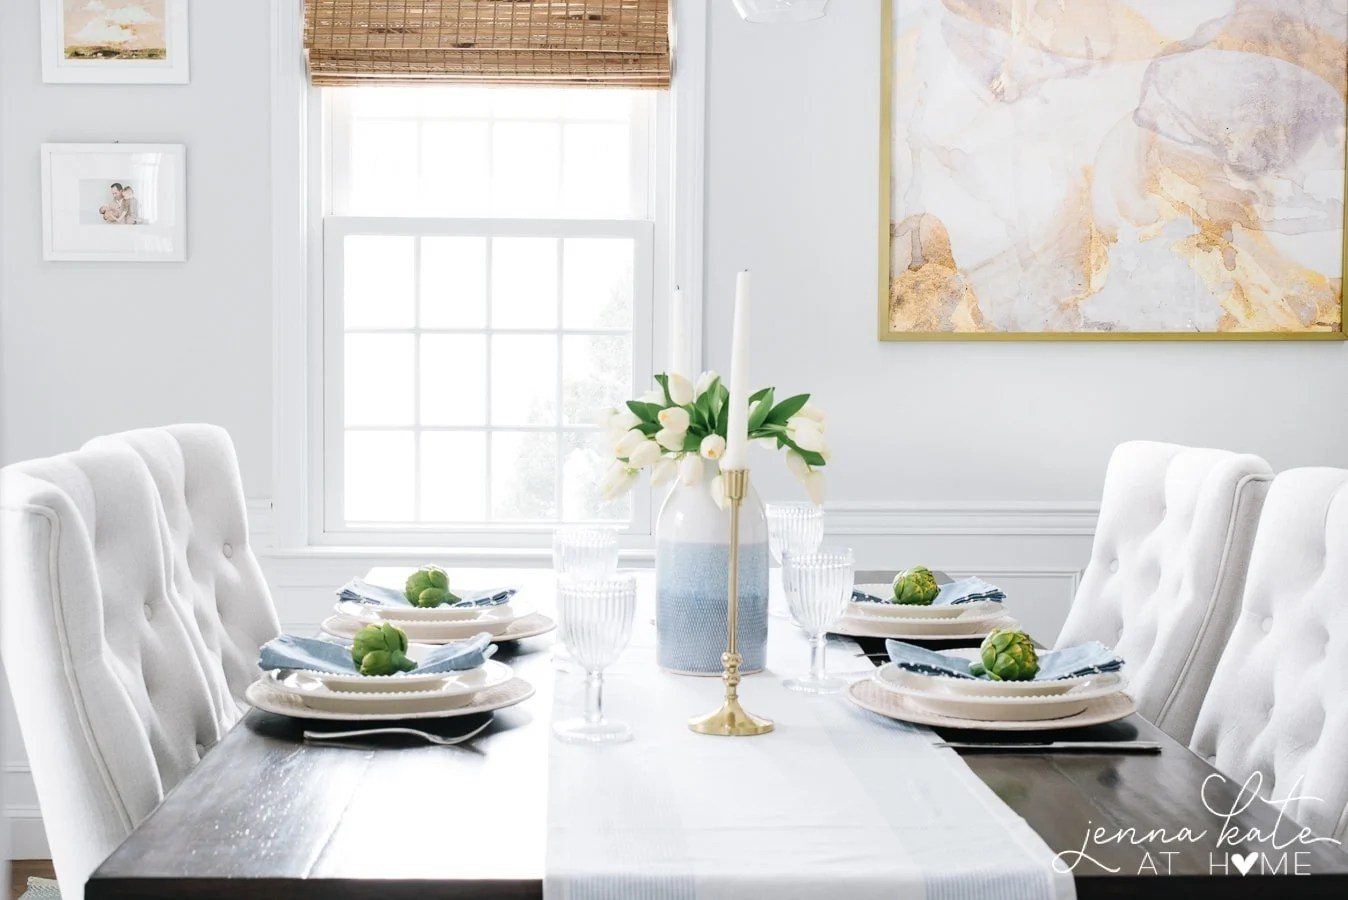 How to simply decorate a table for spring